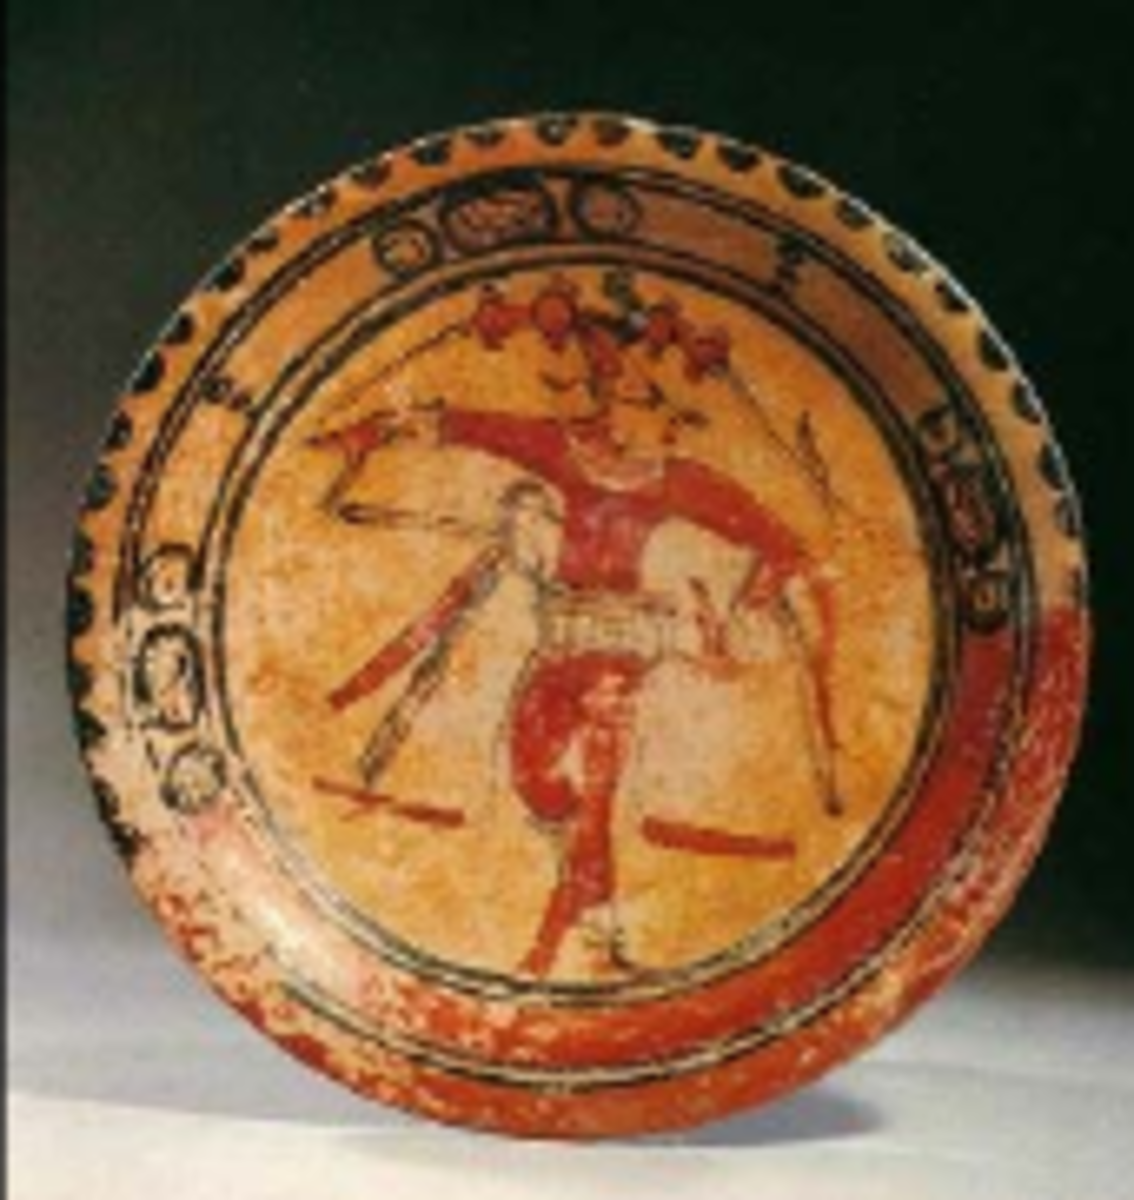 Three hieroglyphic designs circle the central dancing figure on this plate. The dancing Maize God is depicted in a dynamic position. He wears a waist belt known form ball games.